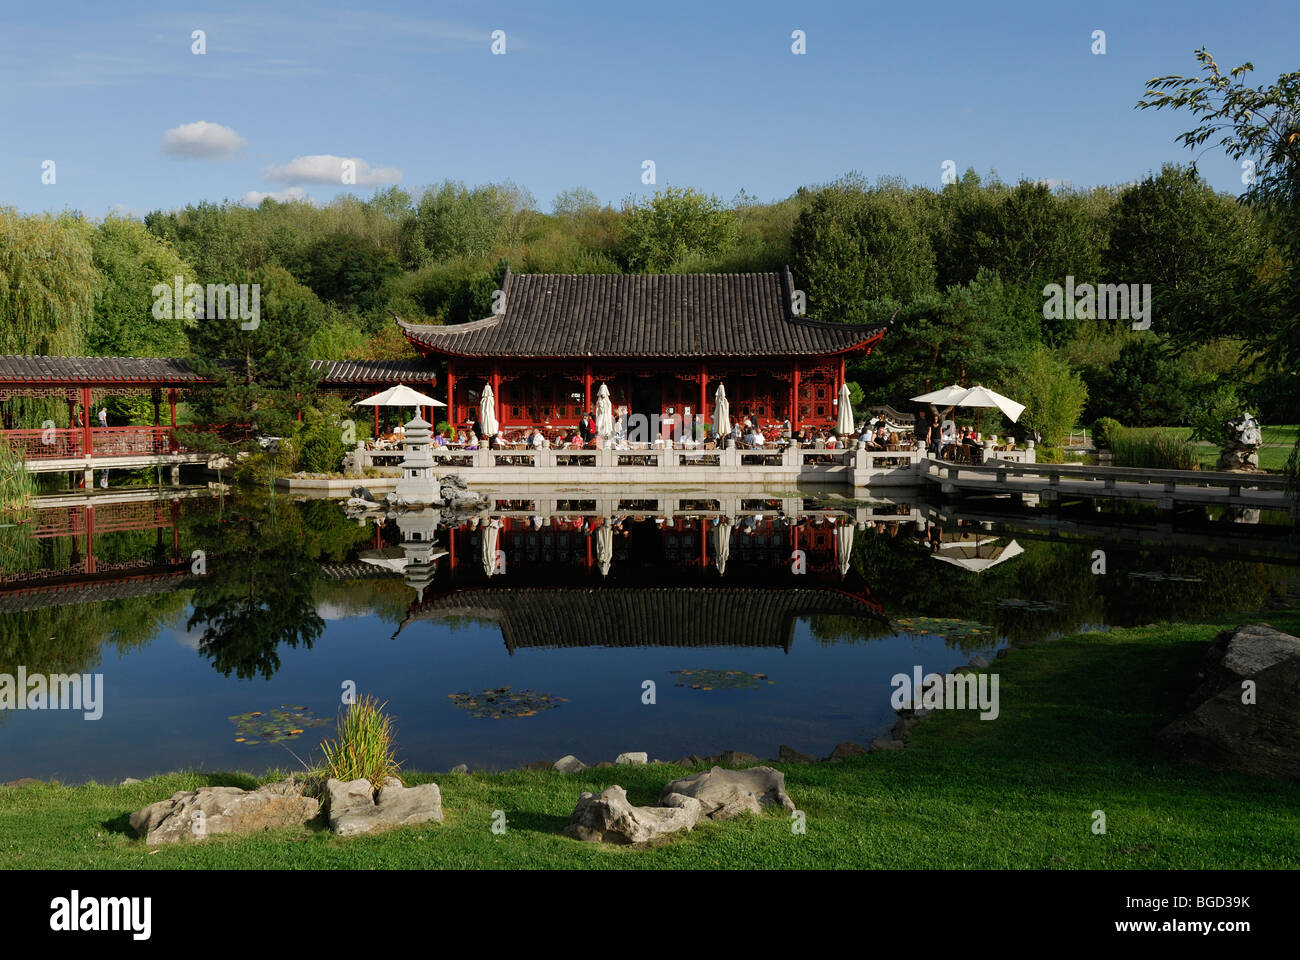 berlin germany chinese pavilion and tea room at the gardens of the stockfoto lizenzfreies. Black Bedroom Furniture Sets. Home Design Ideas